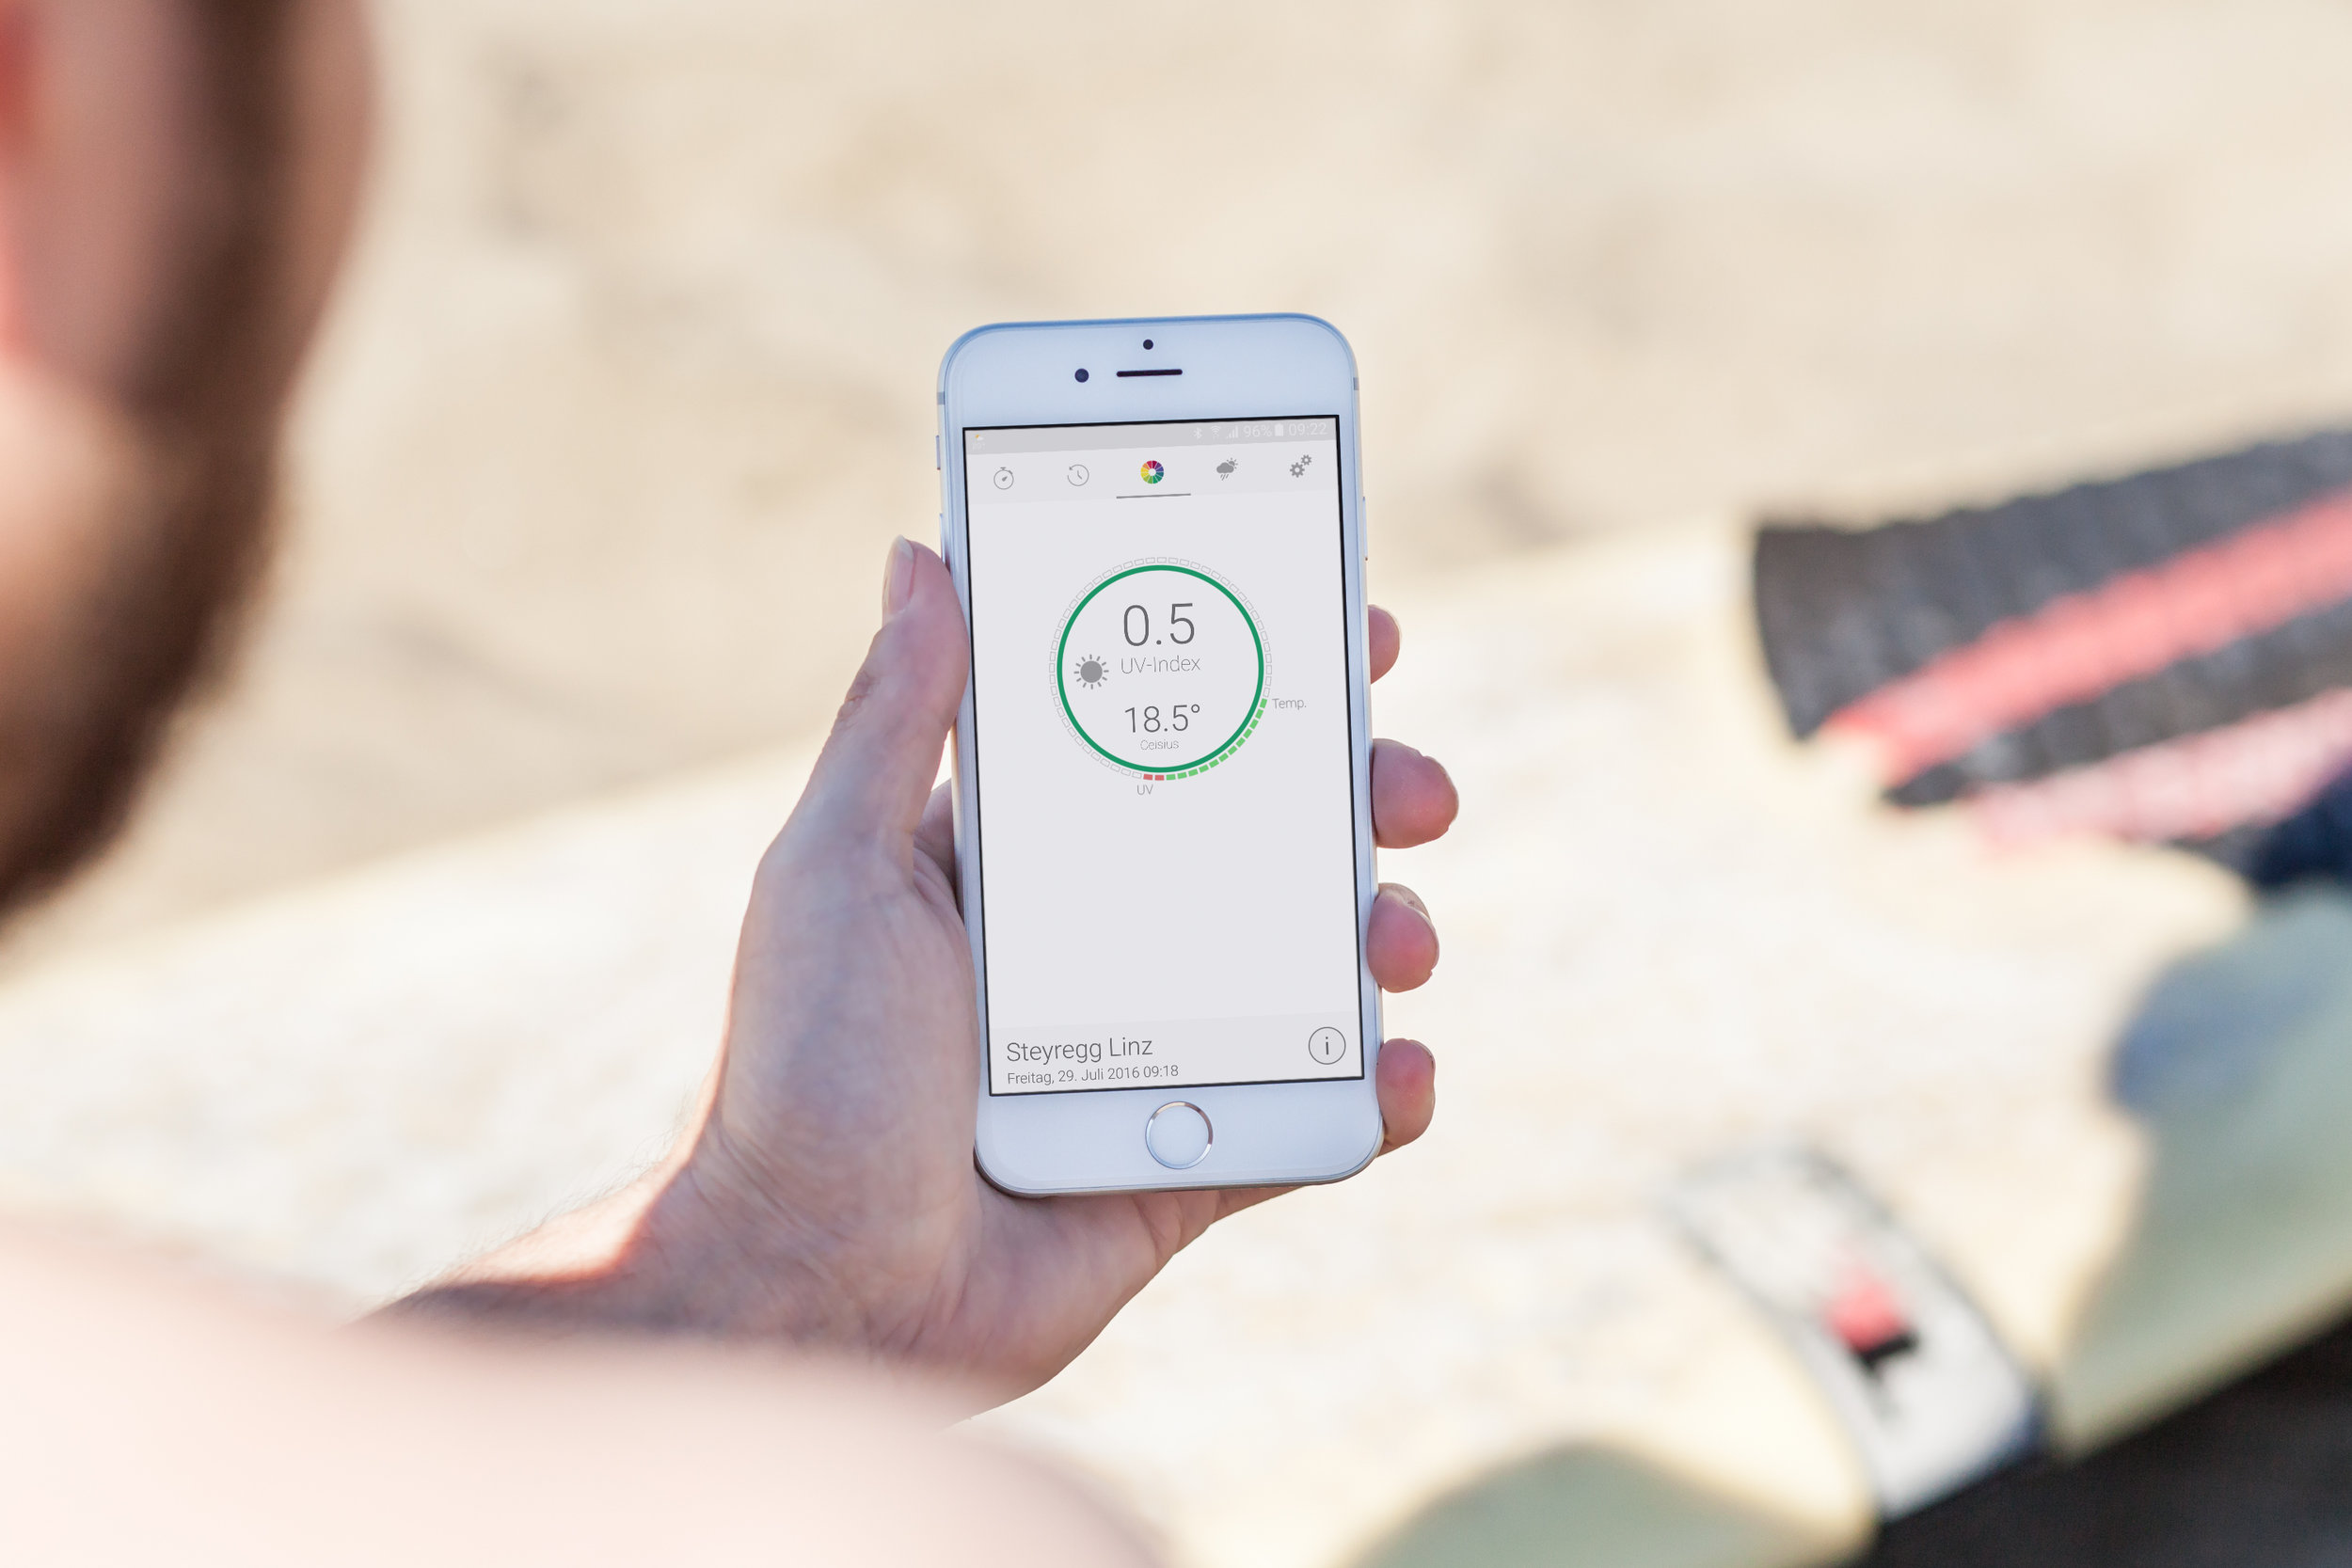 mockDrop_iPhone 6 at the beach.jpg